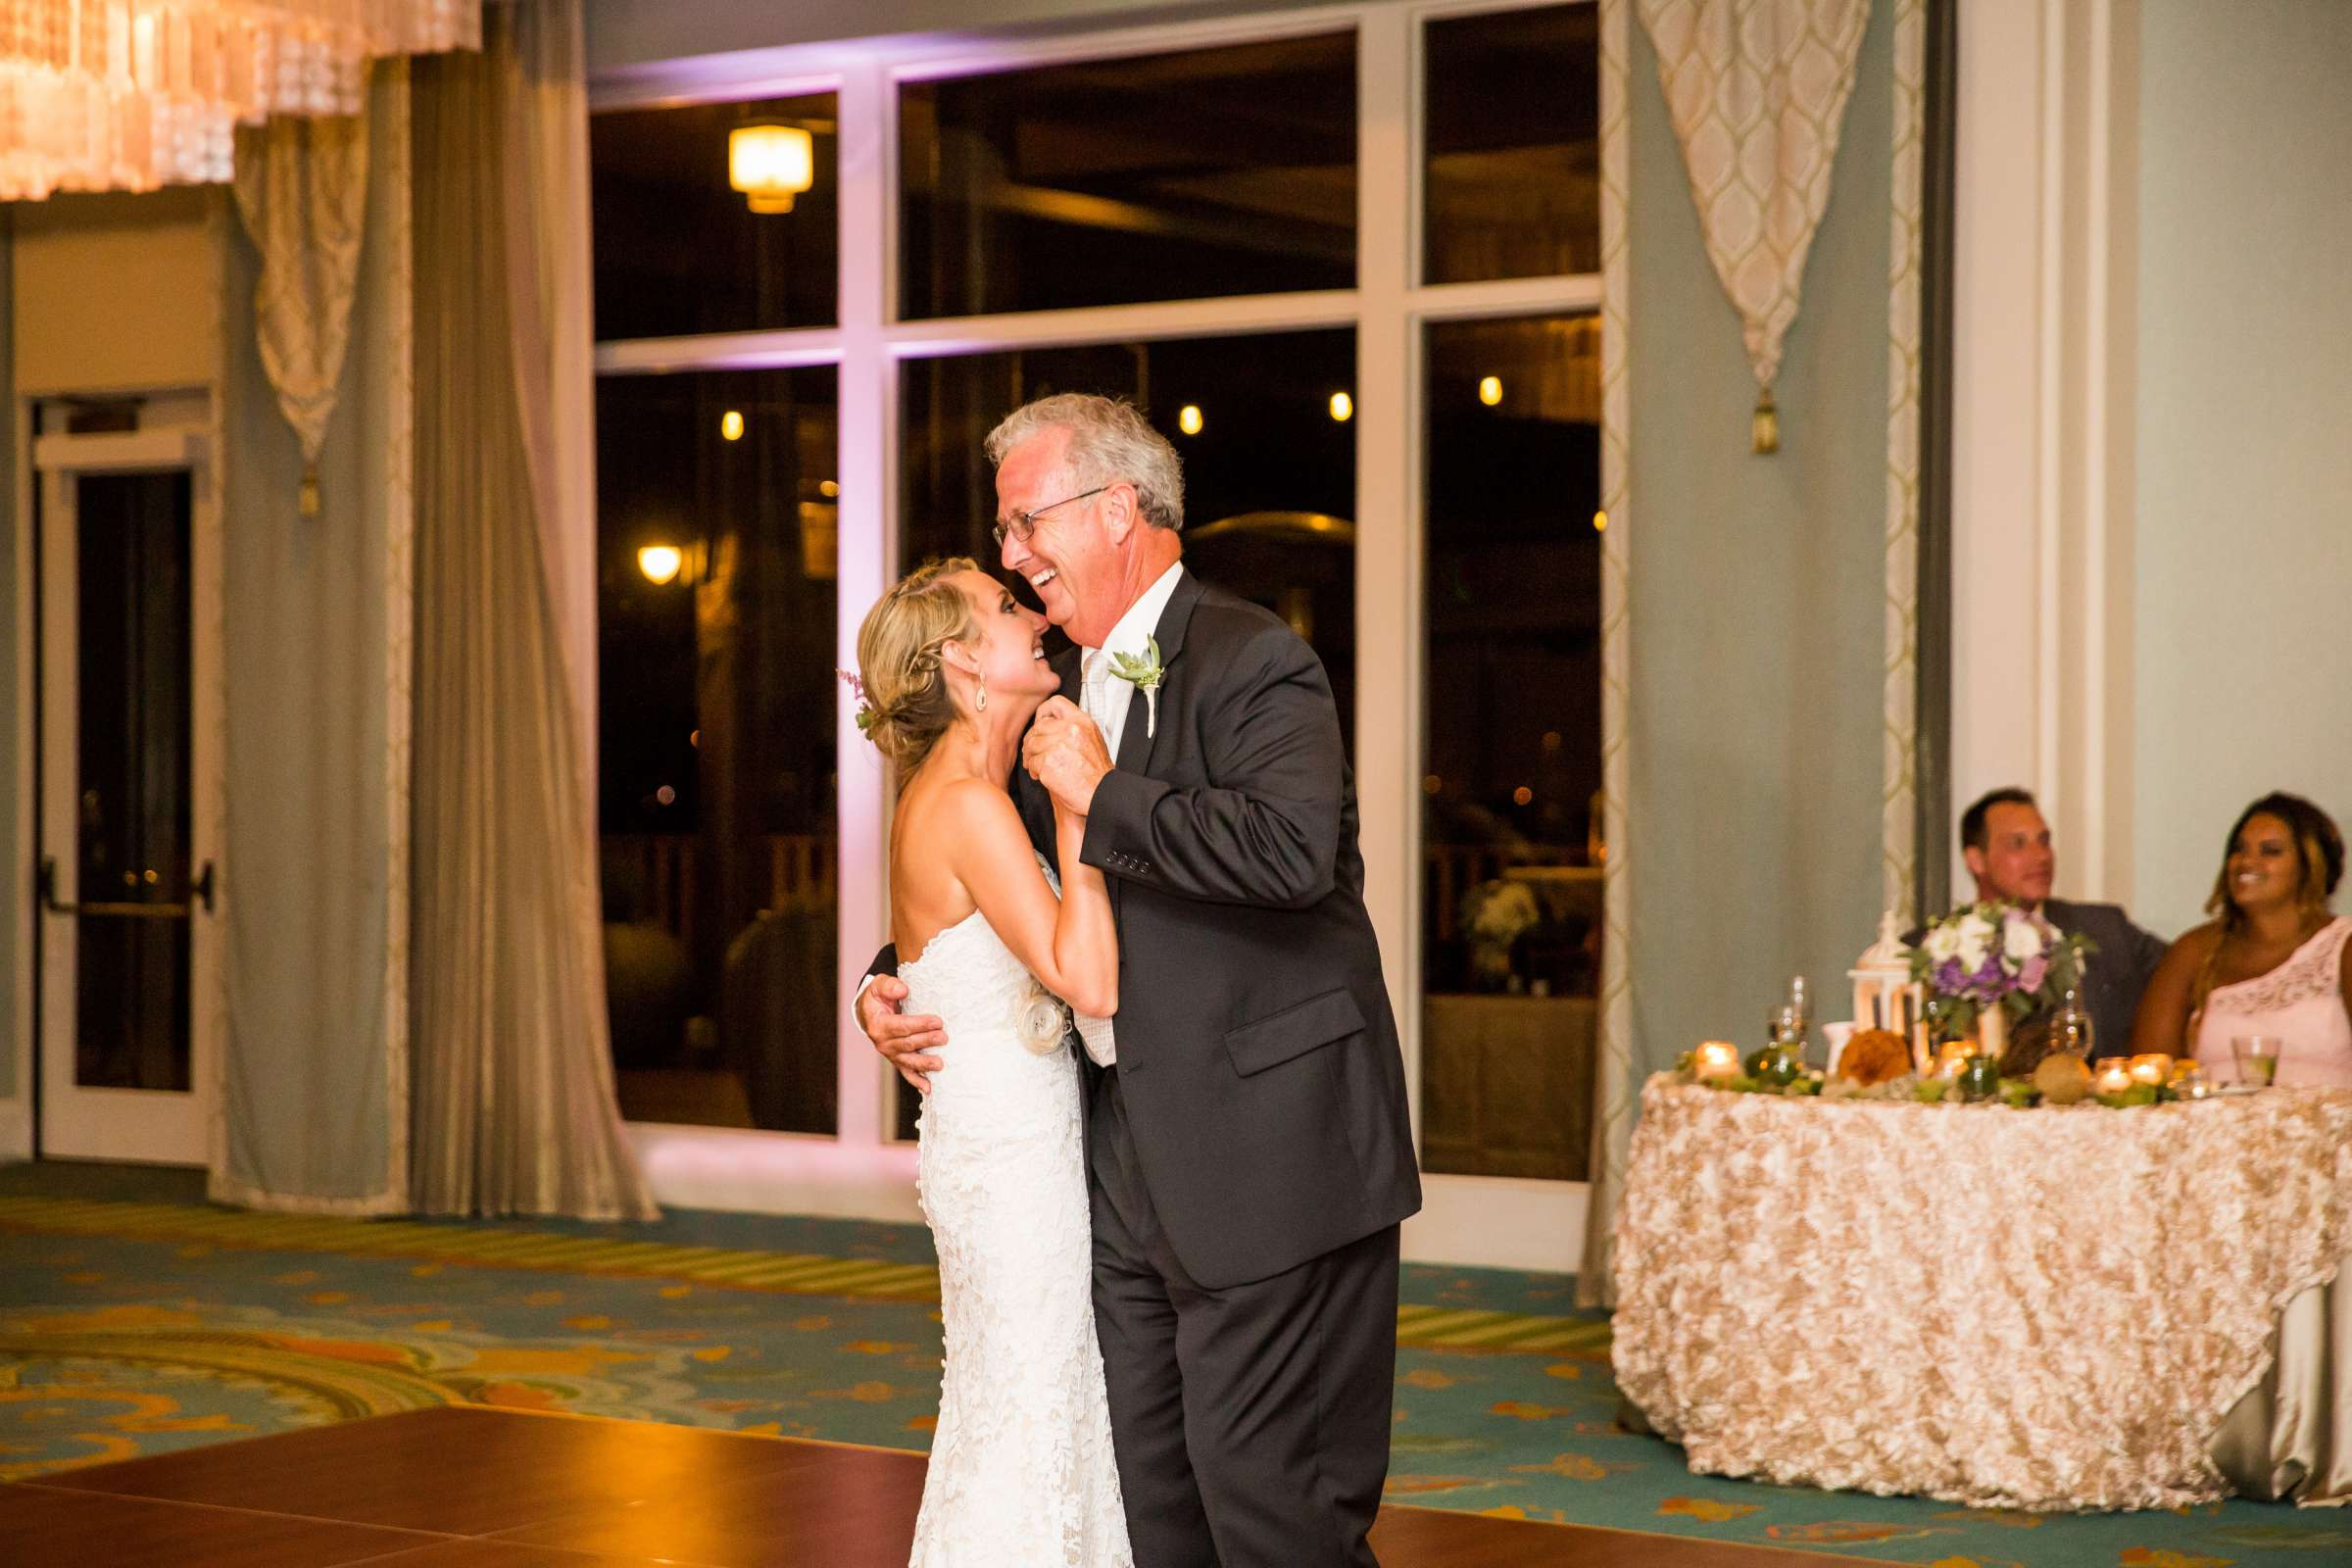 Paradise Point Wedding, Kimberly and Michael Wedding Photo #102 by True Photography